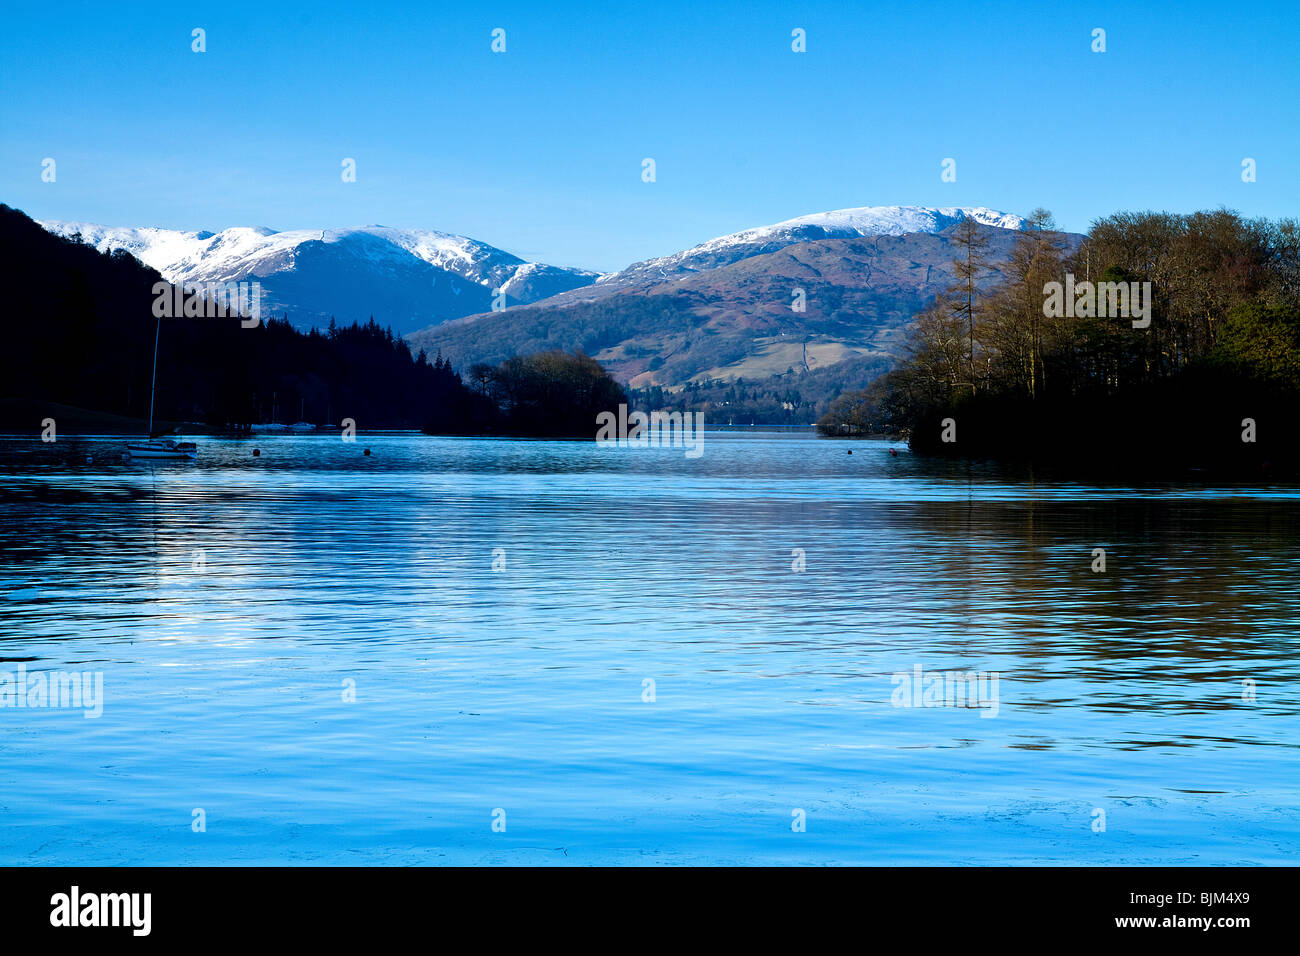 Icy Water of Lake Windermere looking North from Ferry House to snow capped mountains in early Spring. - Stock Image